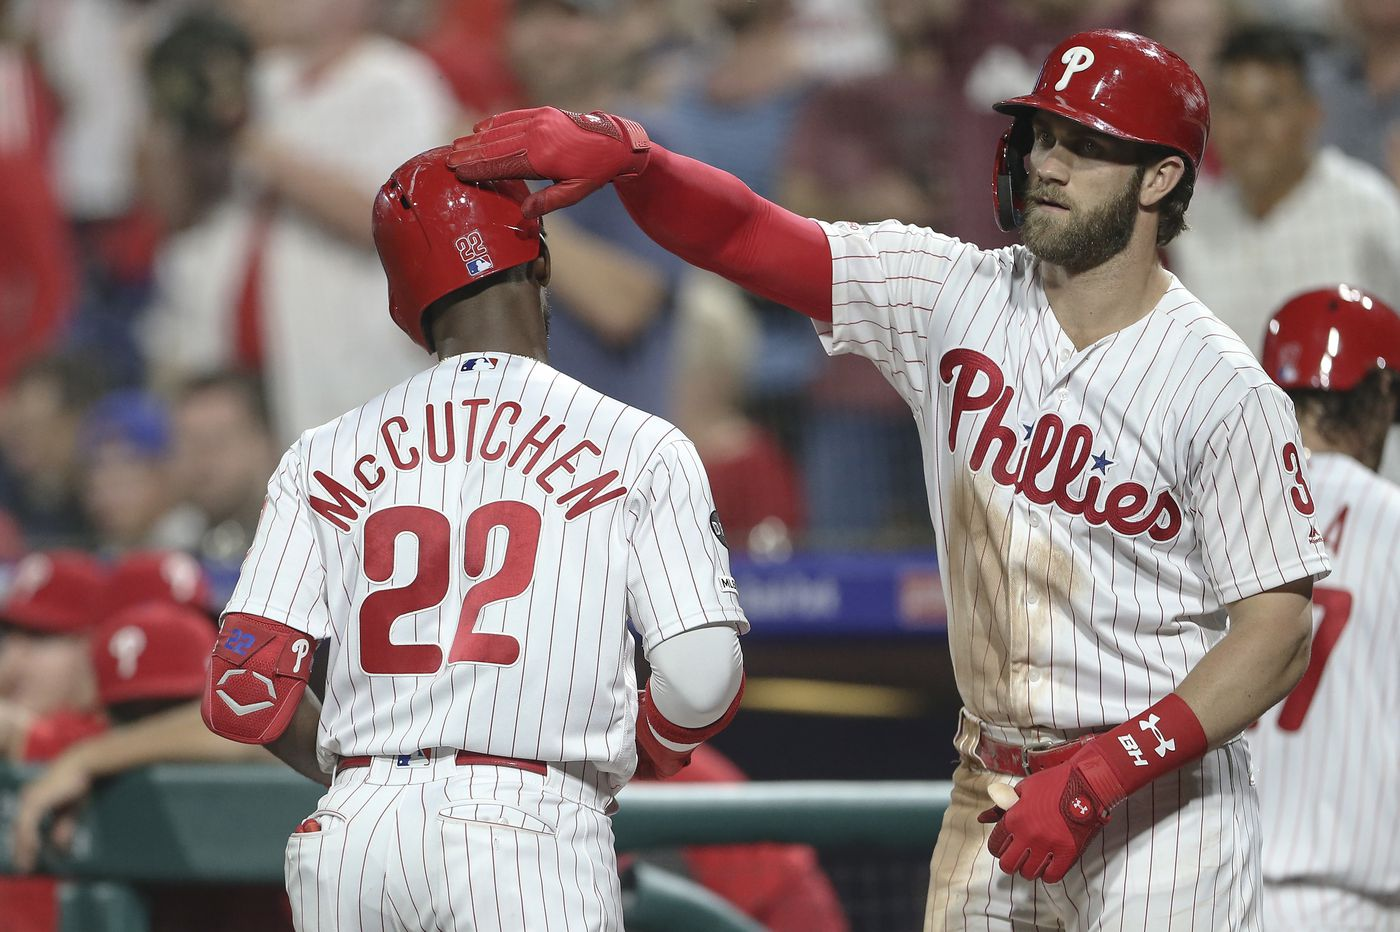 Bryce Harper homers, leaves game early in Phillies rout of Cardinals